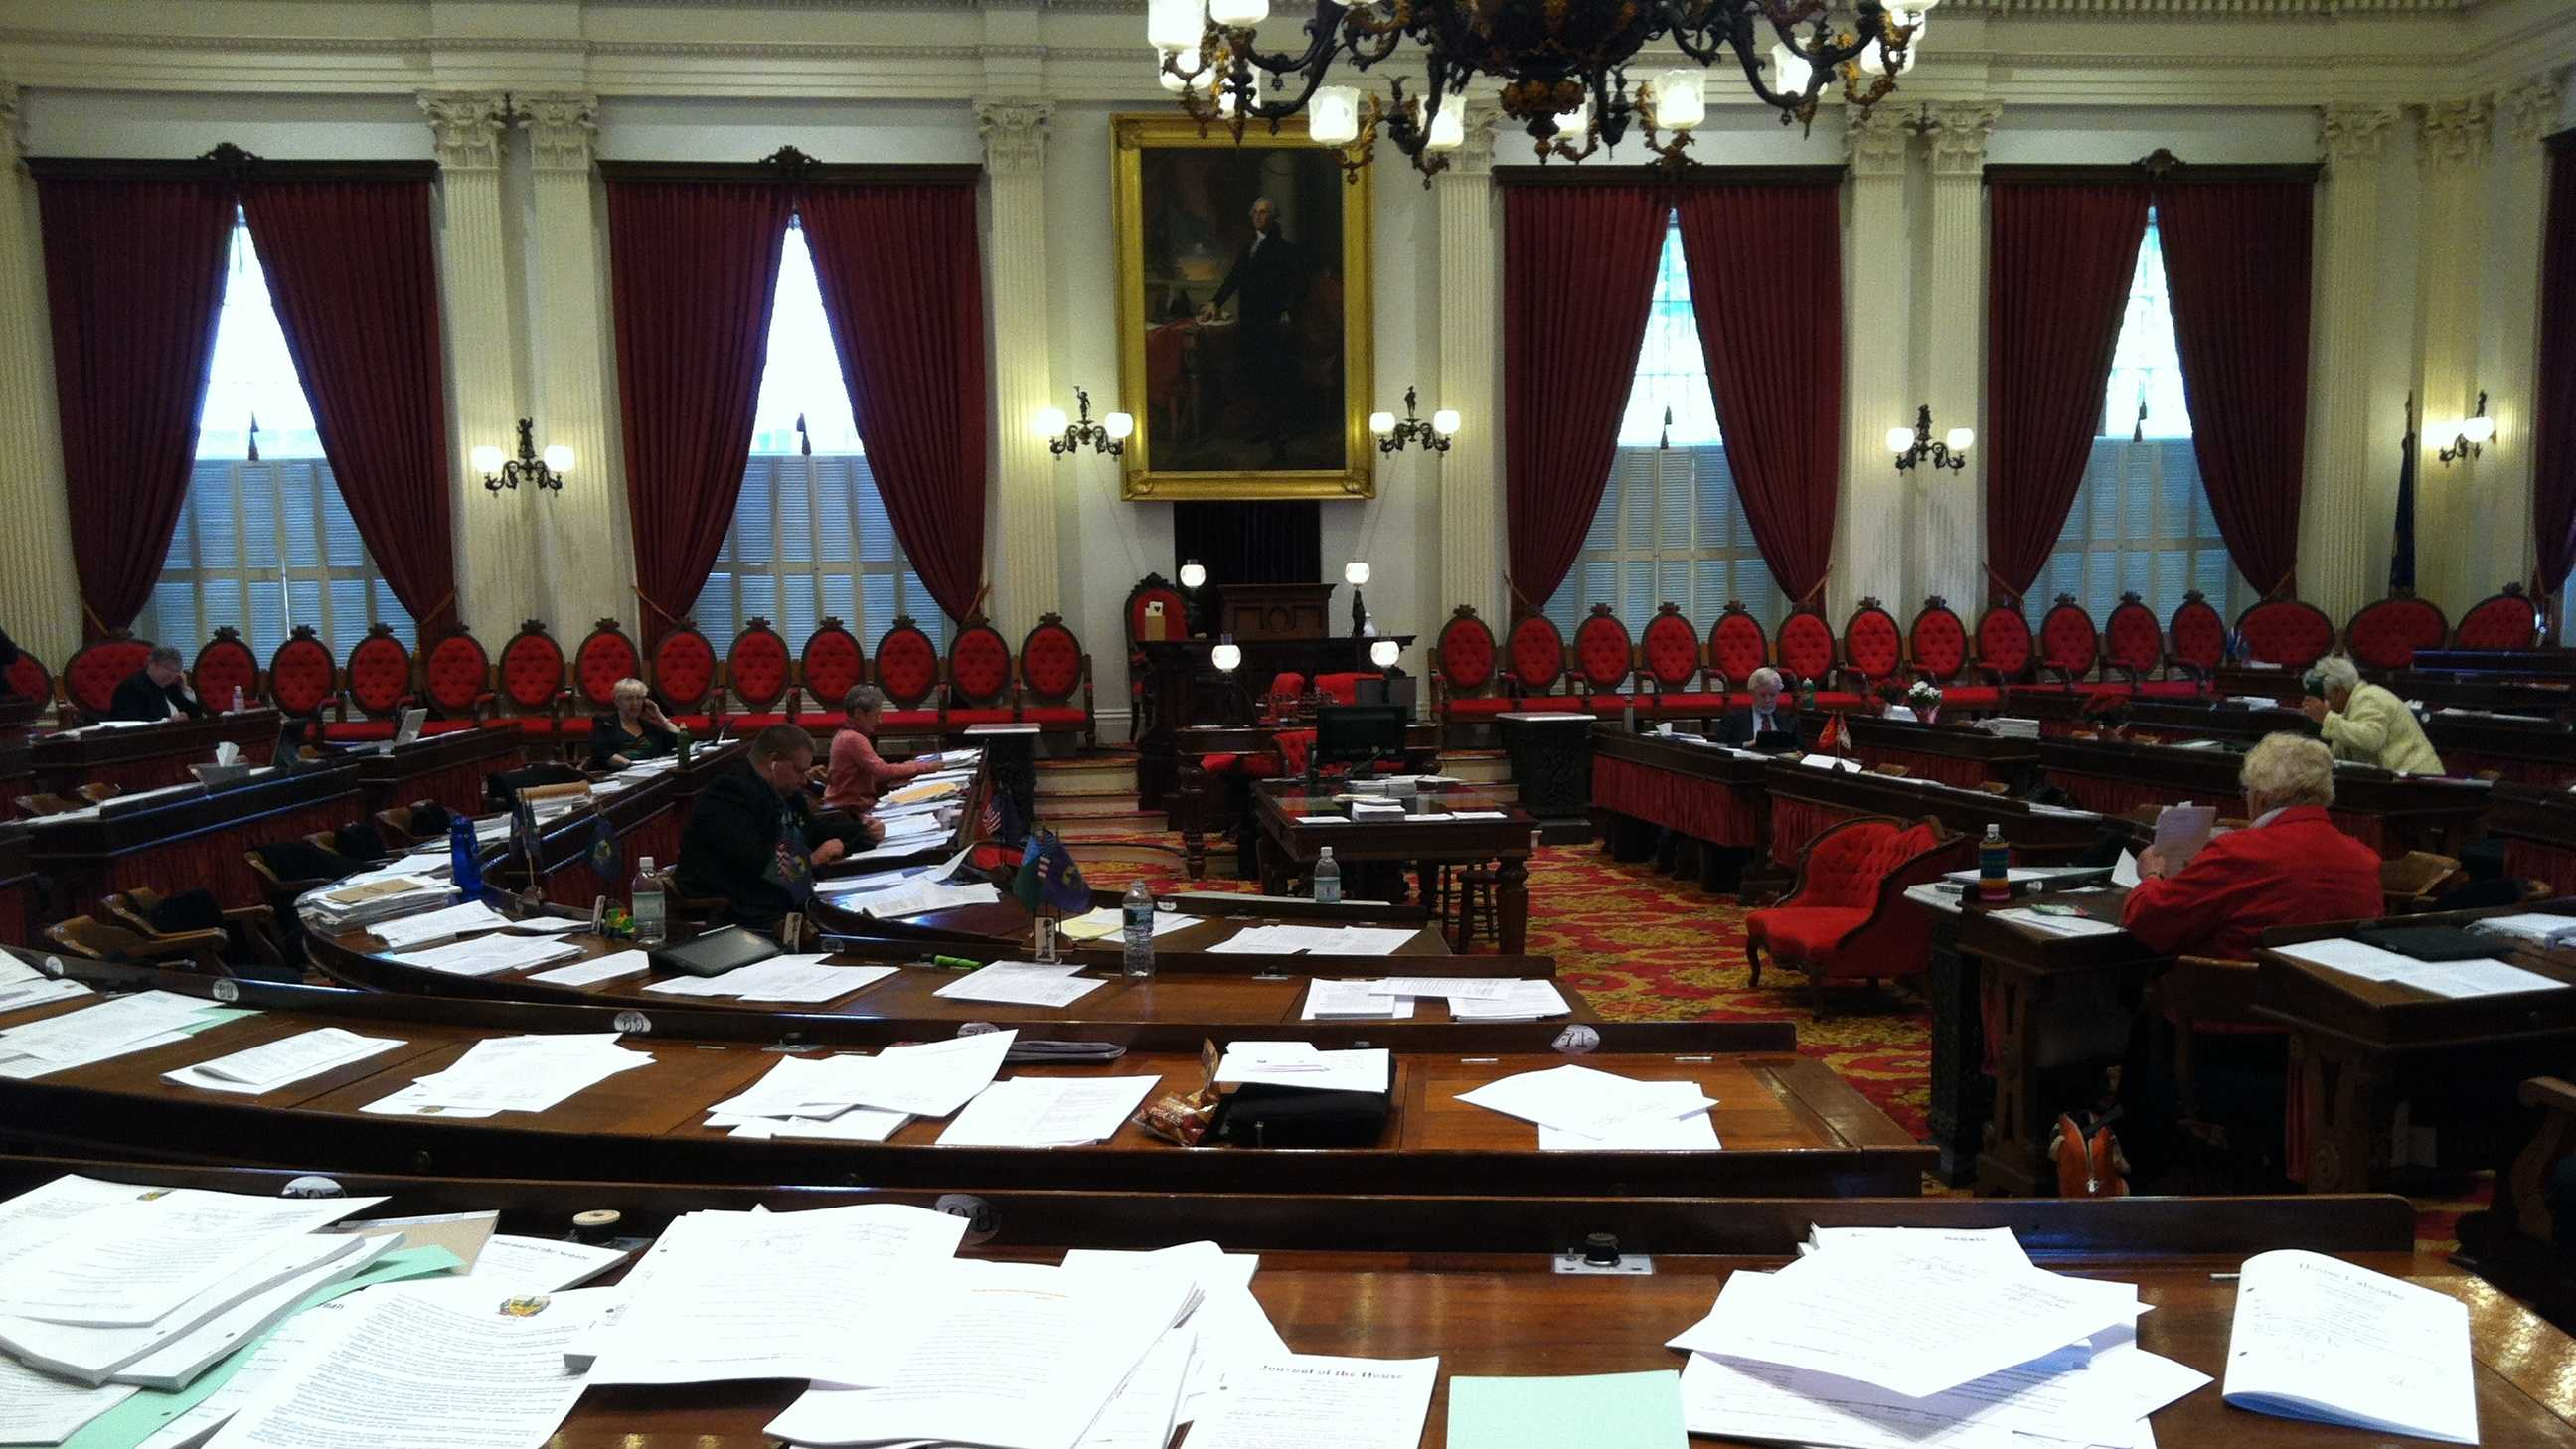 A mostly empty House chamber on the final day of the 2013 session.